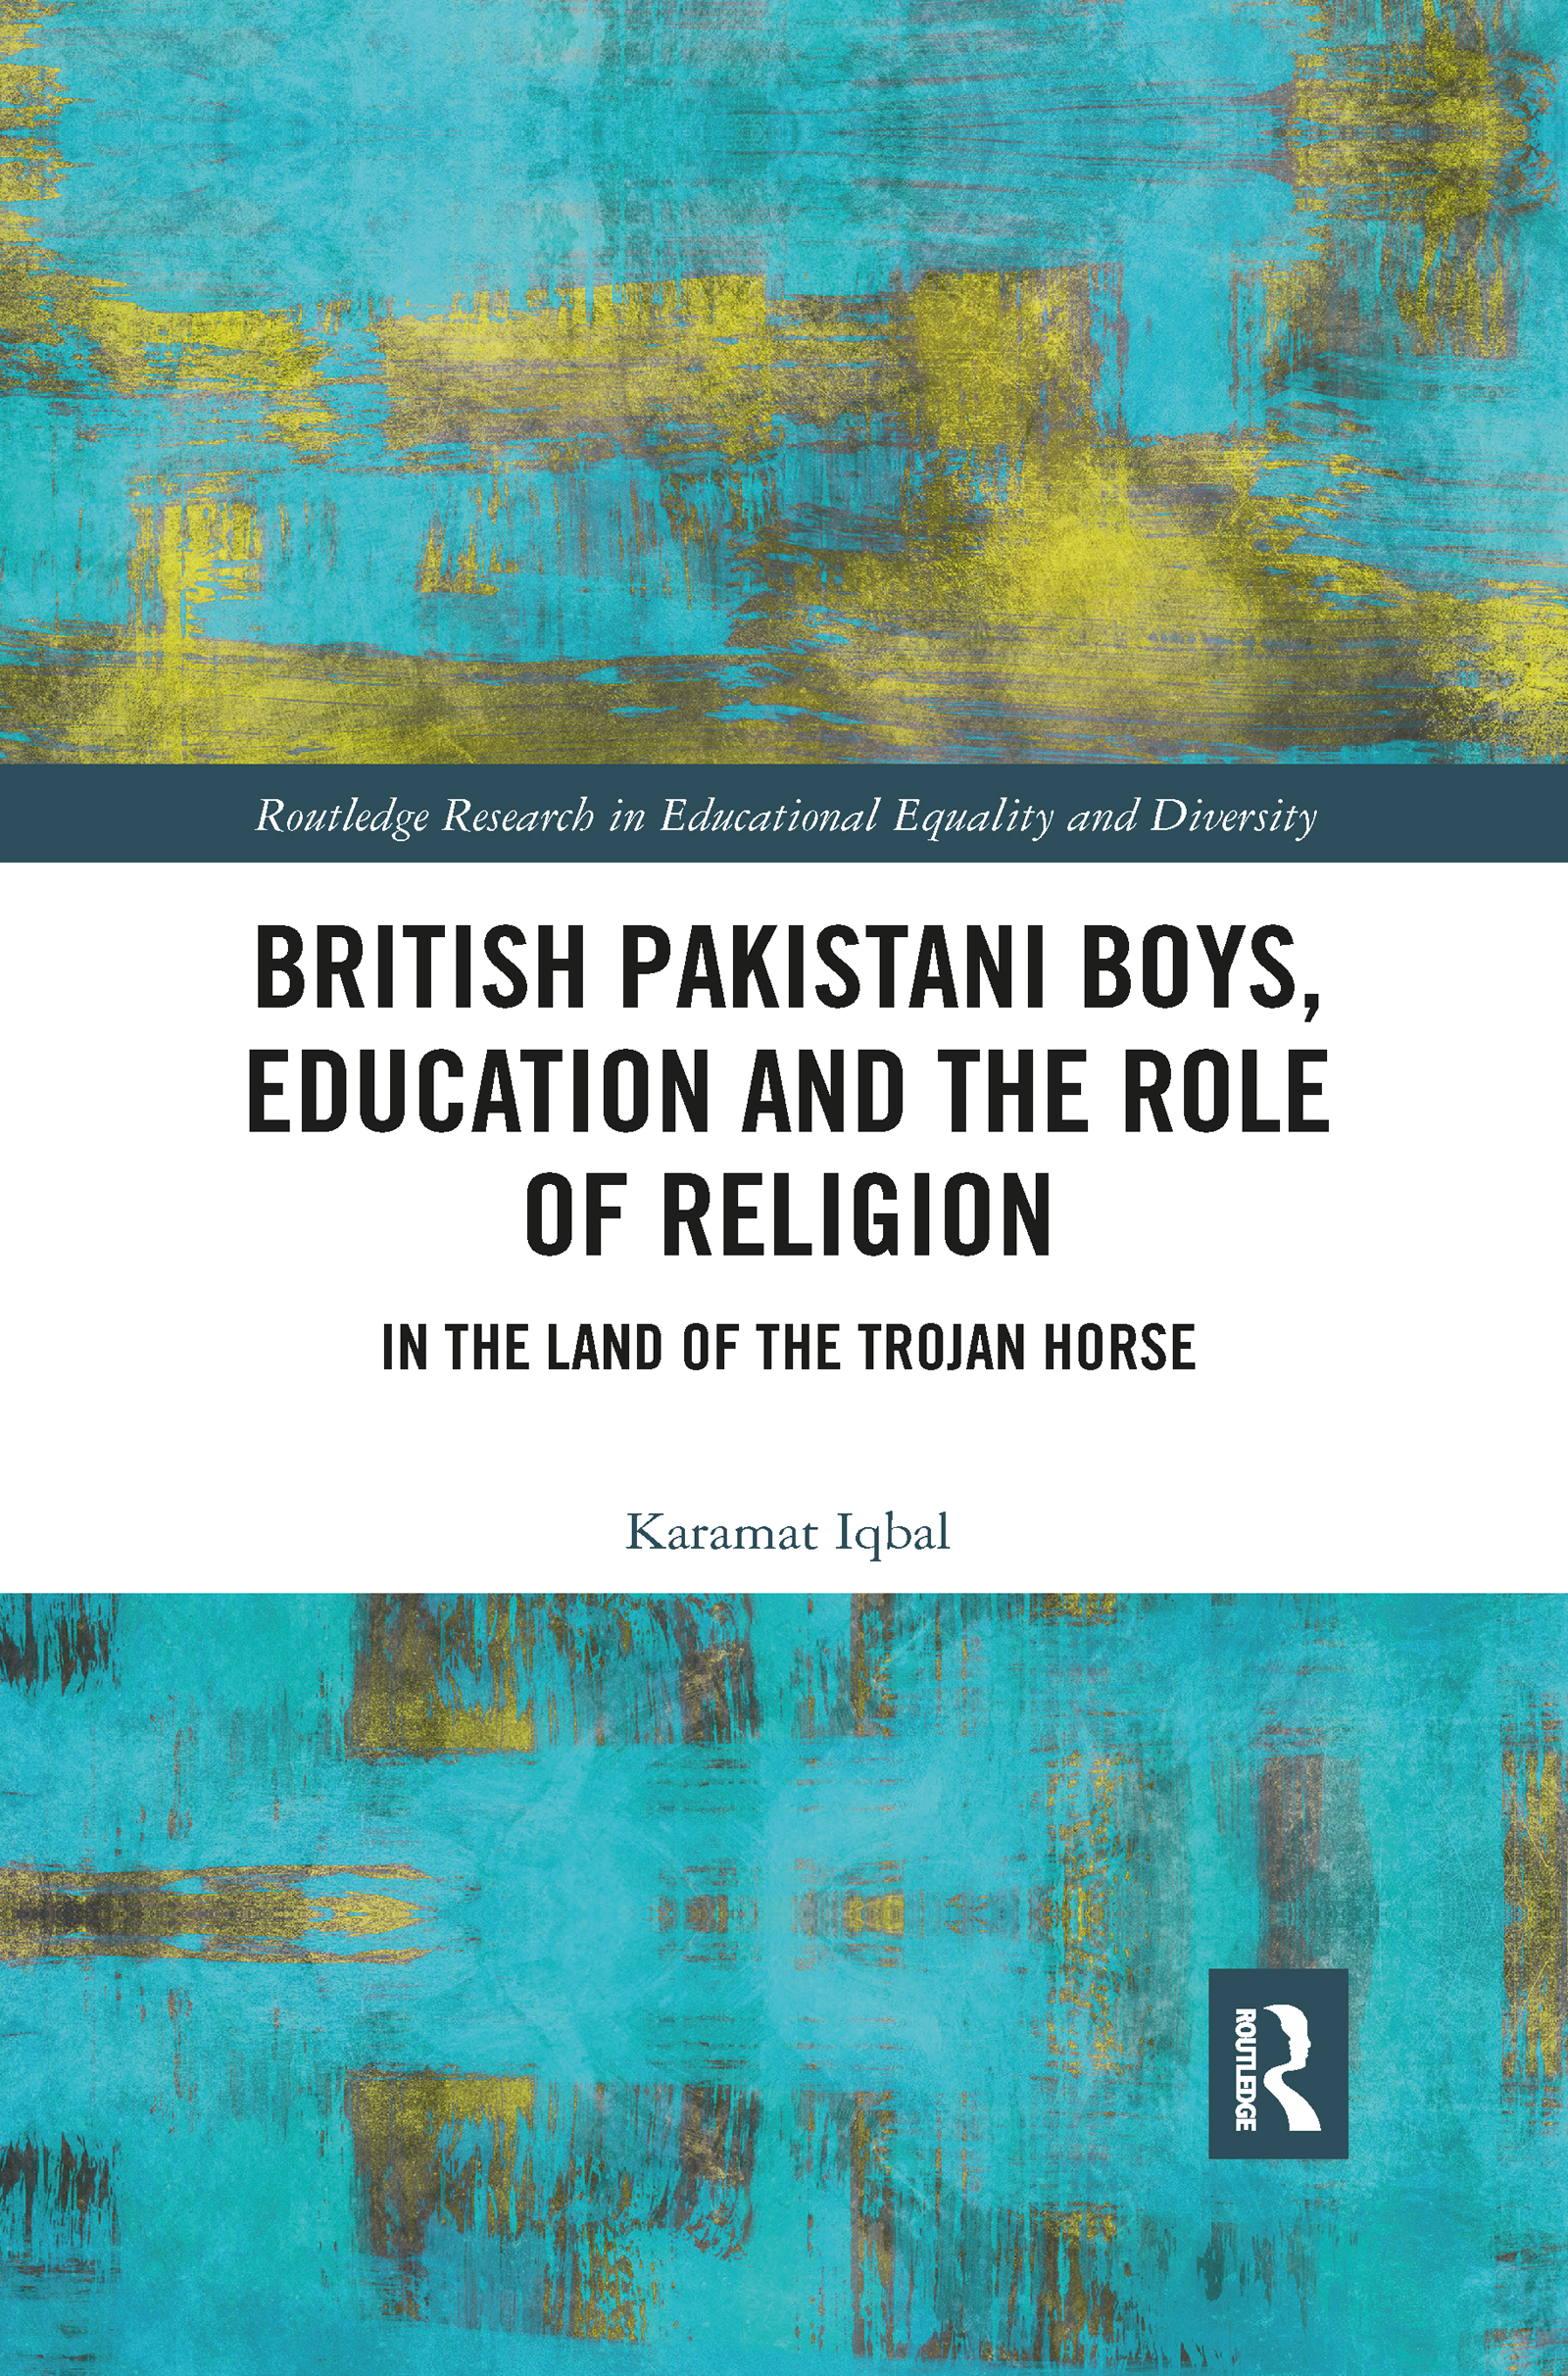 British Pakistani Boys, Education and the Role of Religion